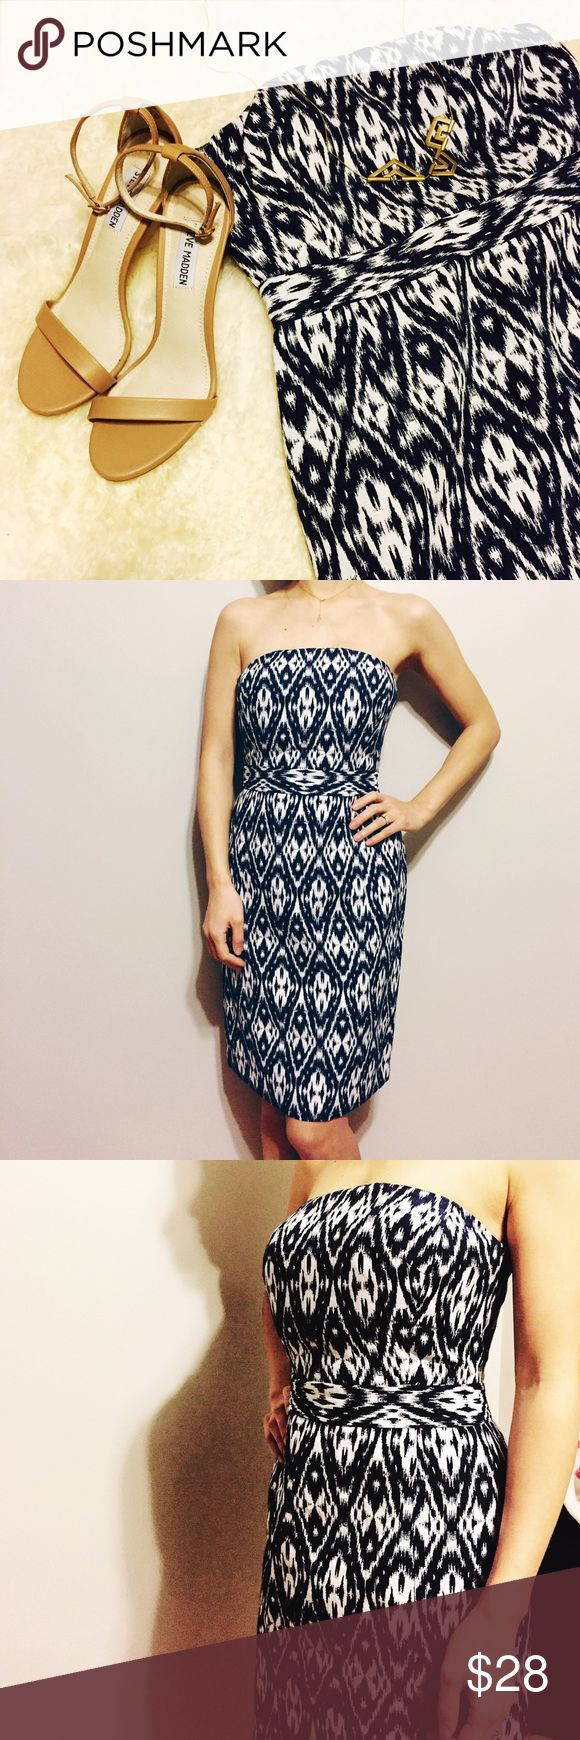 Banana Republic dress Never been worn. Aztec pattern with padded bra inside. Zipper at back. This is an elegant dress for party or dinner. Banana Republic Dresses Strapless